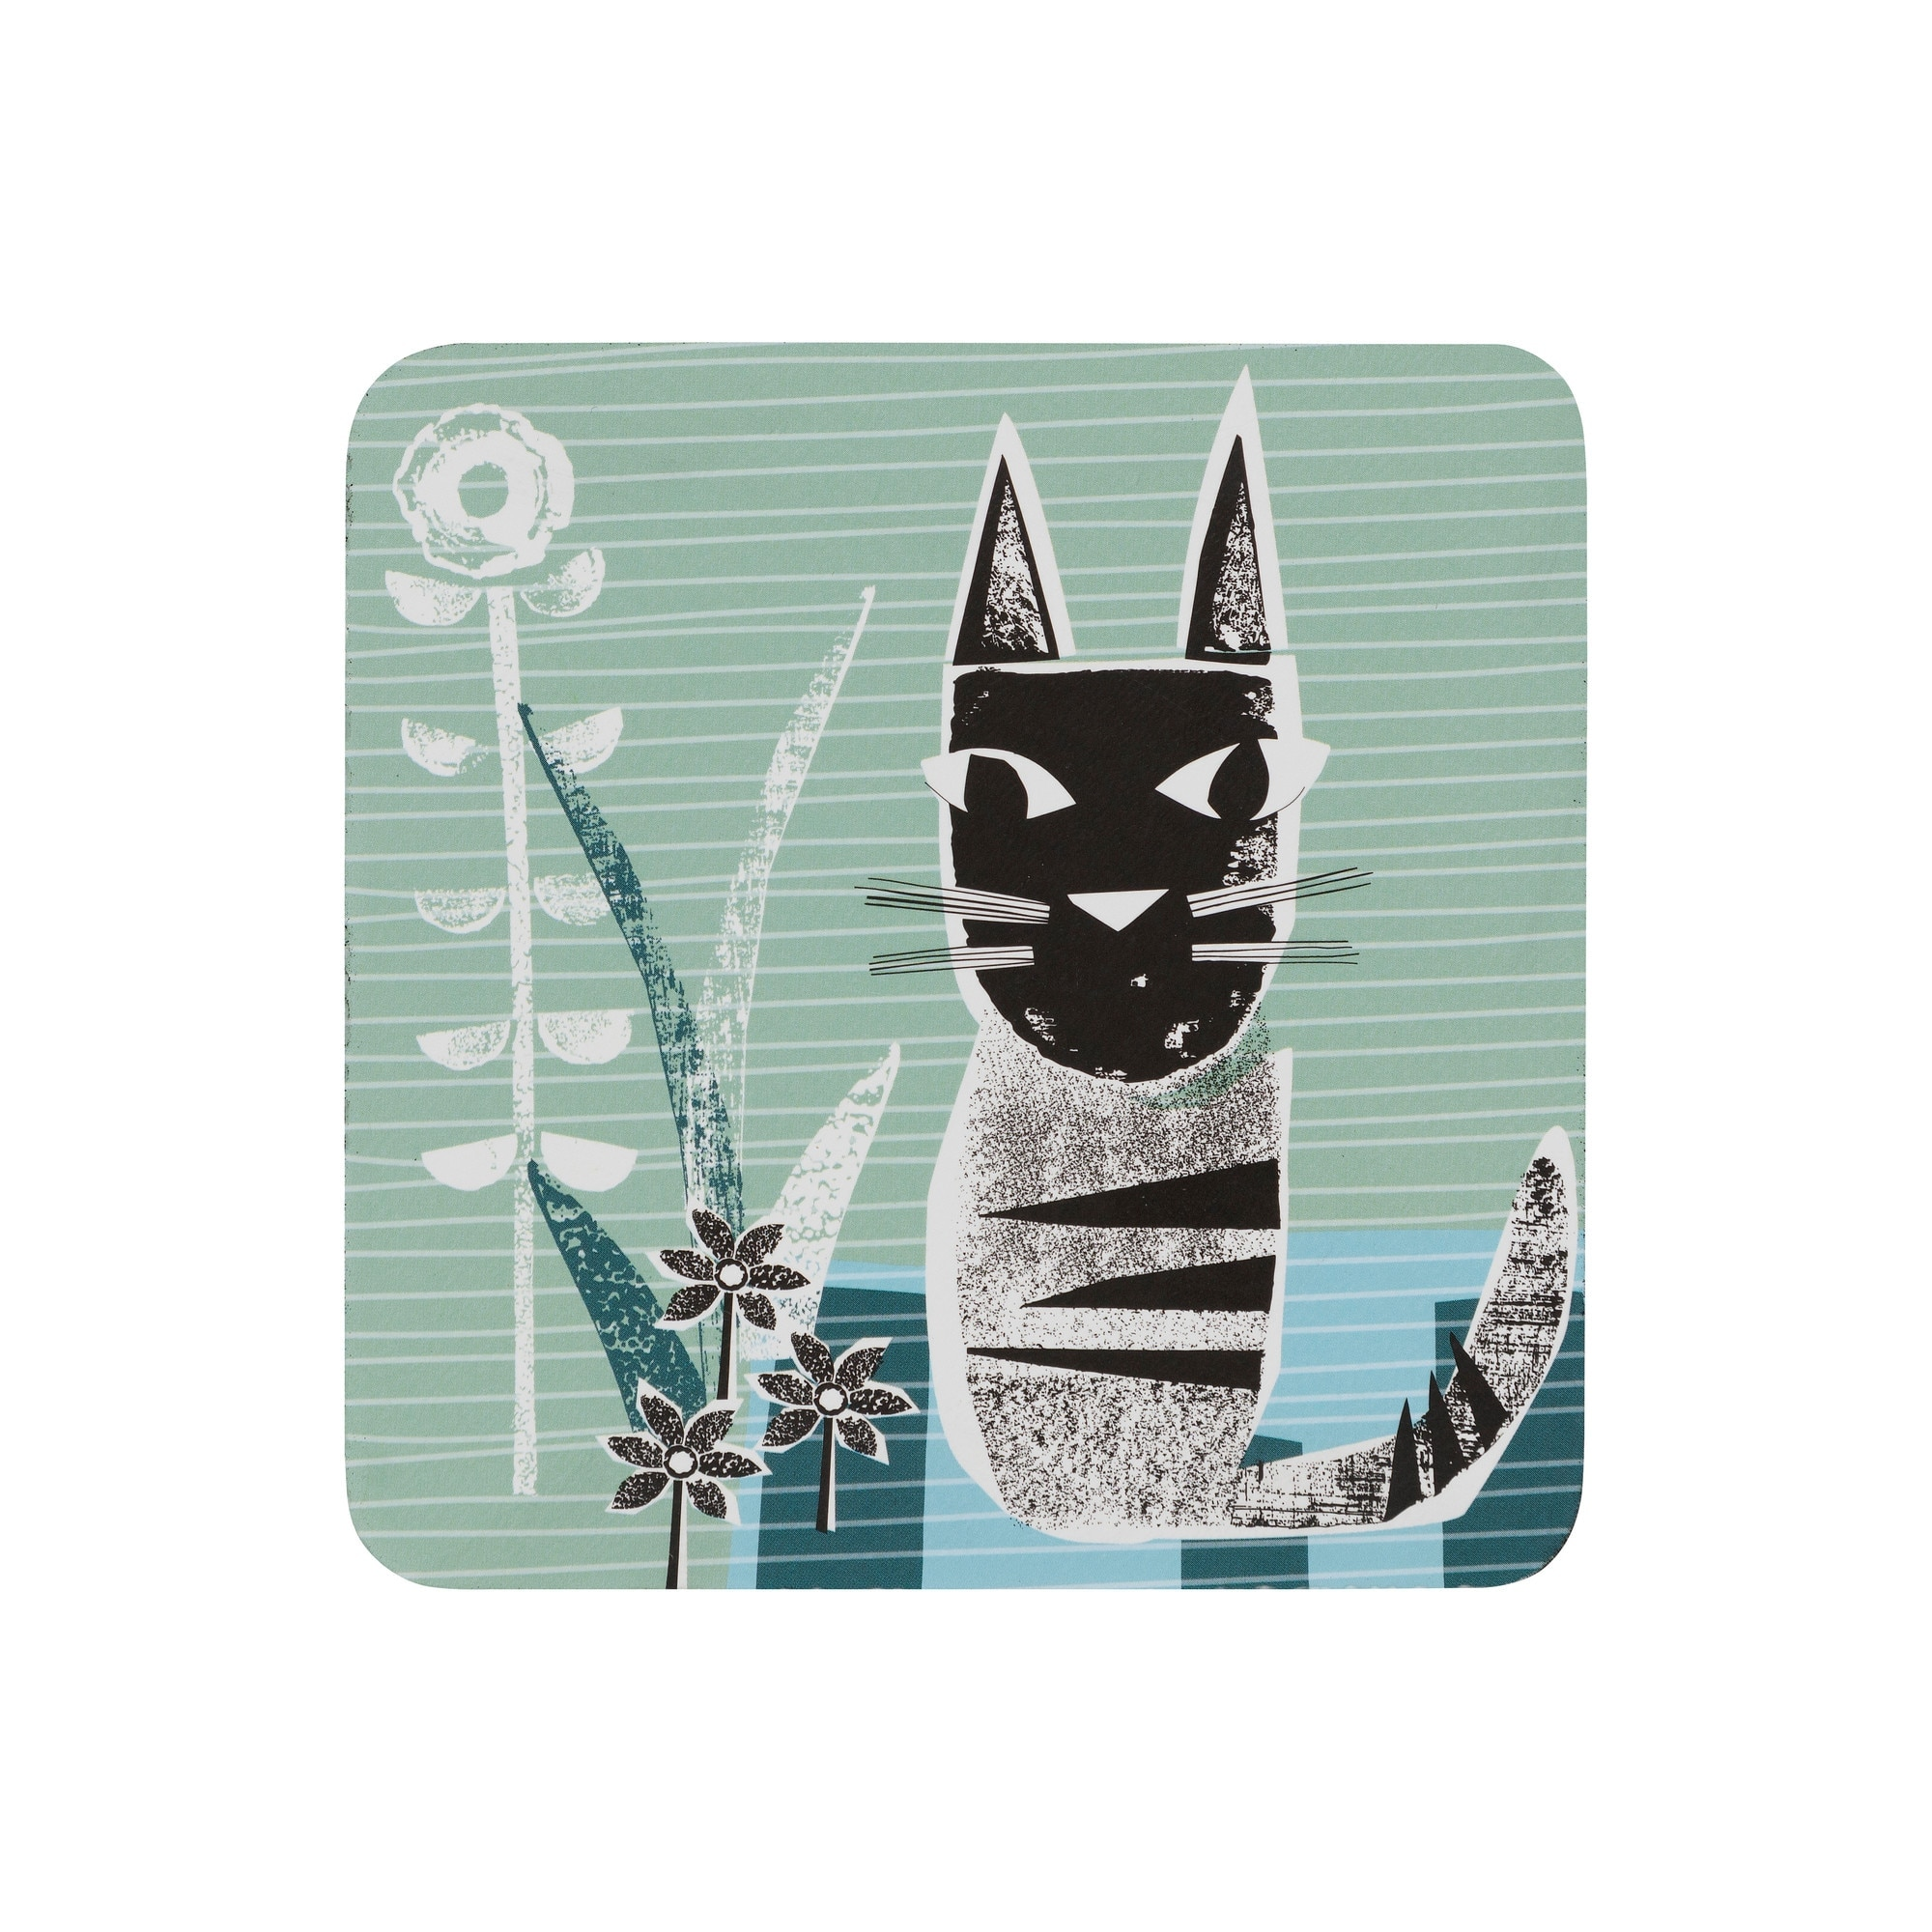 Compare prices for Denby Cat Coasters Set of 6